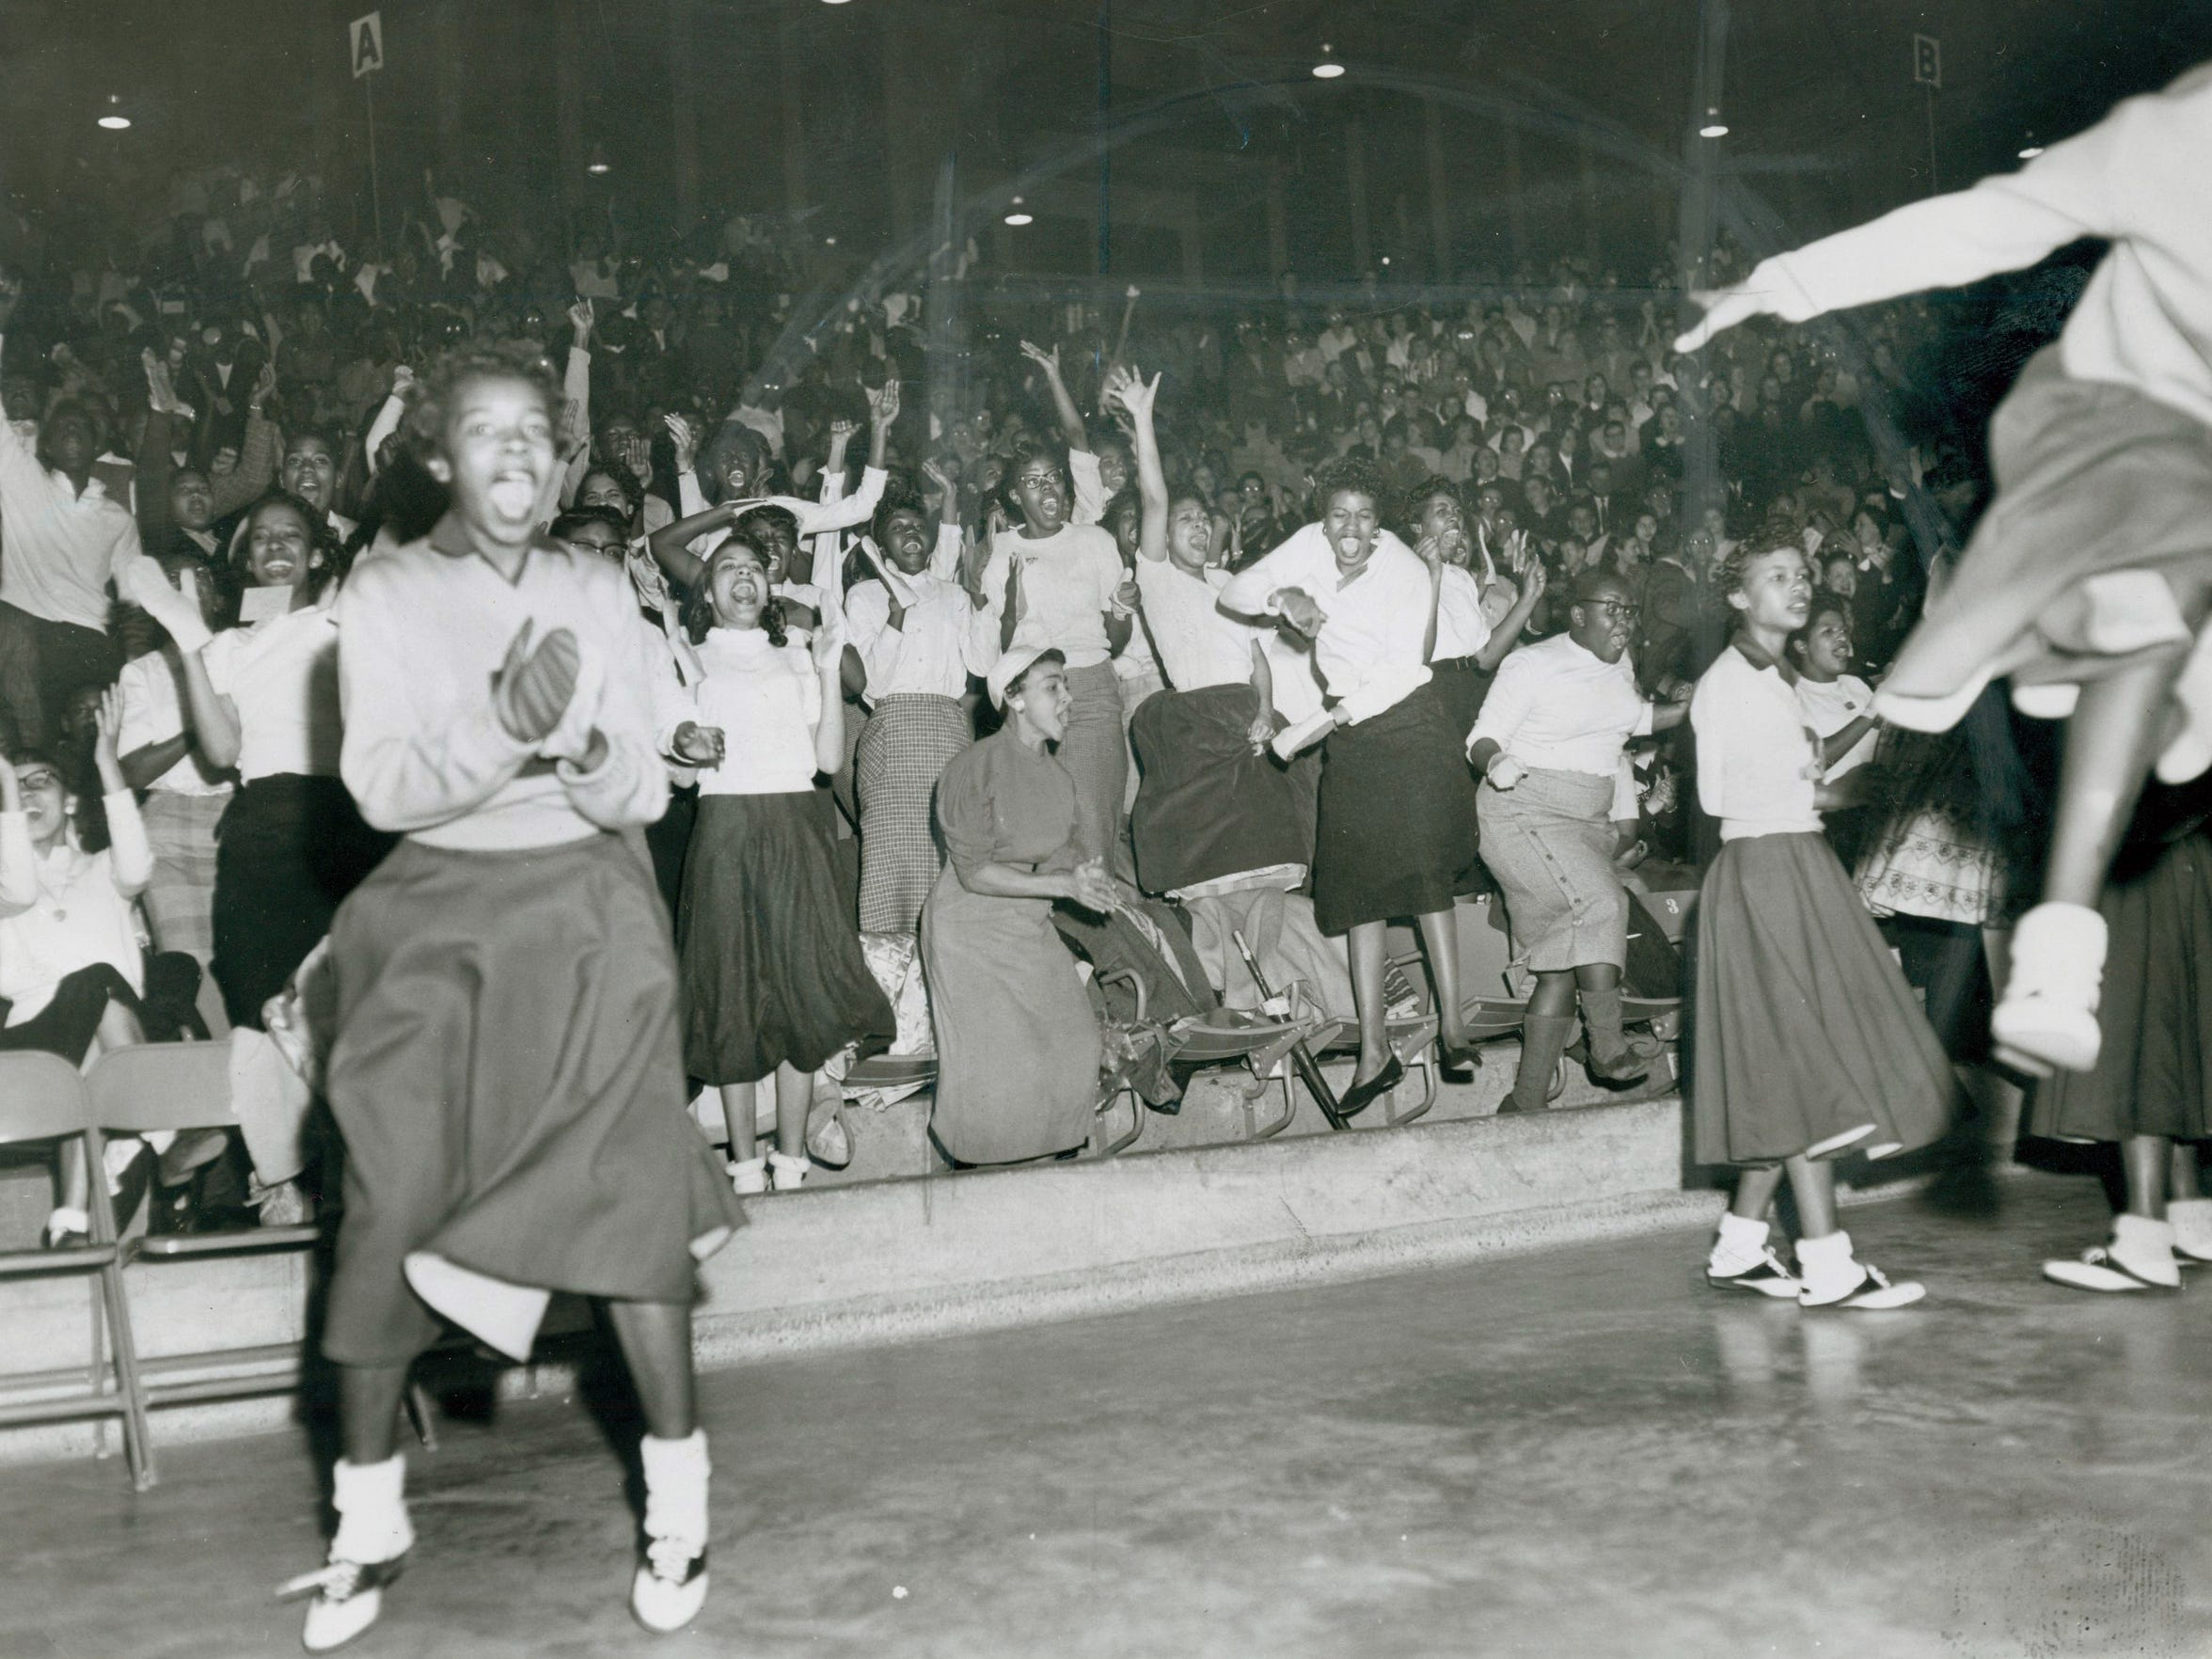 Fans celebrate as Evansville Lincoln, in its waning days as the city's all-black high school, upset Bosse 42-37 in the Evansville Sectional at Roberts Stadium on Feb. 27, 1958.